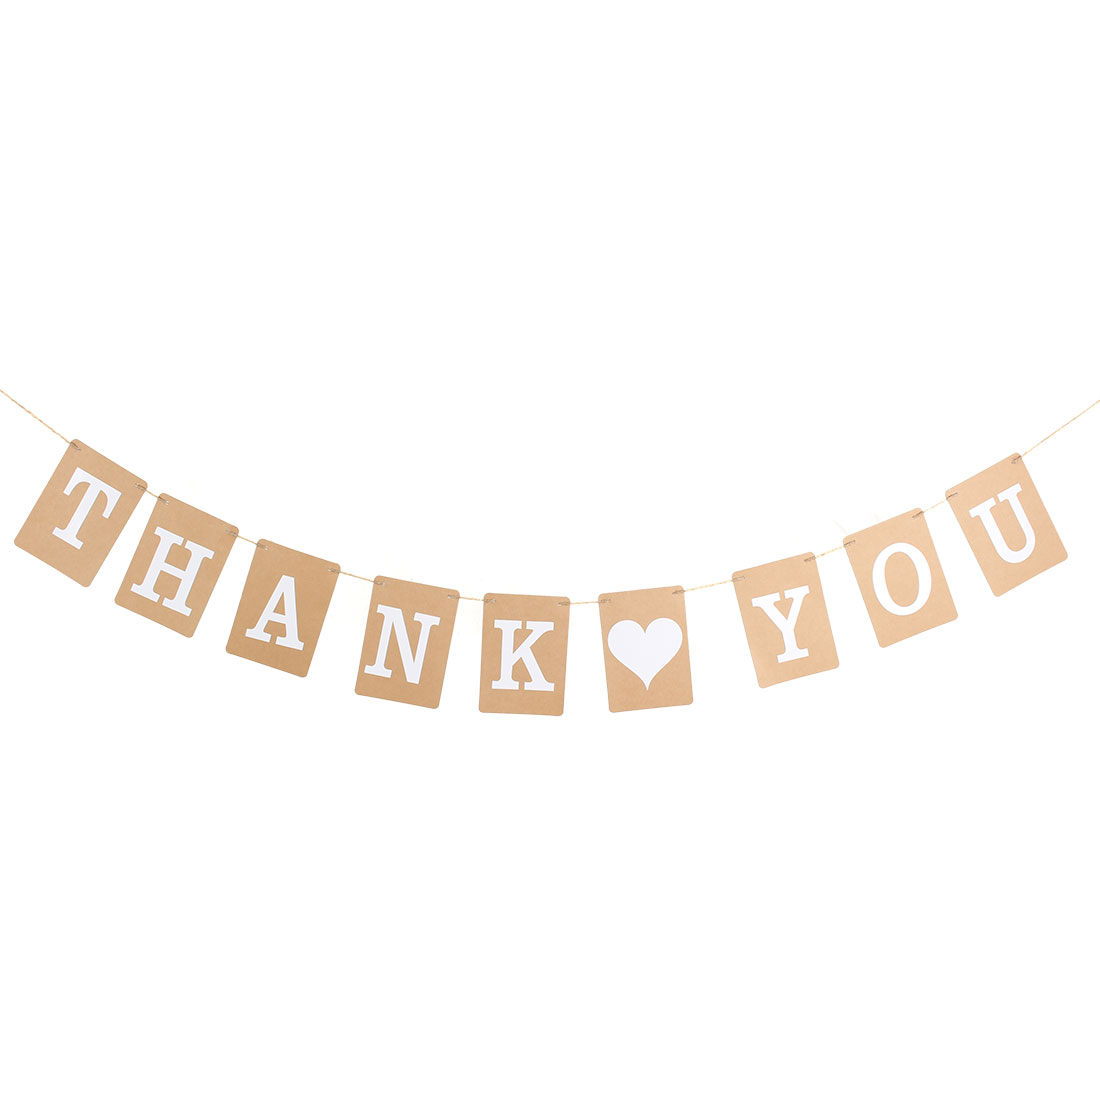 THANK YOU Wedding Engagement Banner Decoration Bunting Garland Photo Props Khaki